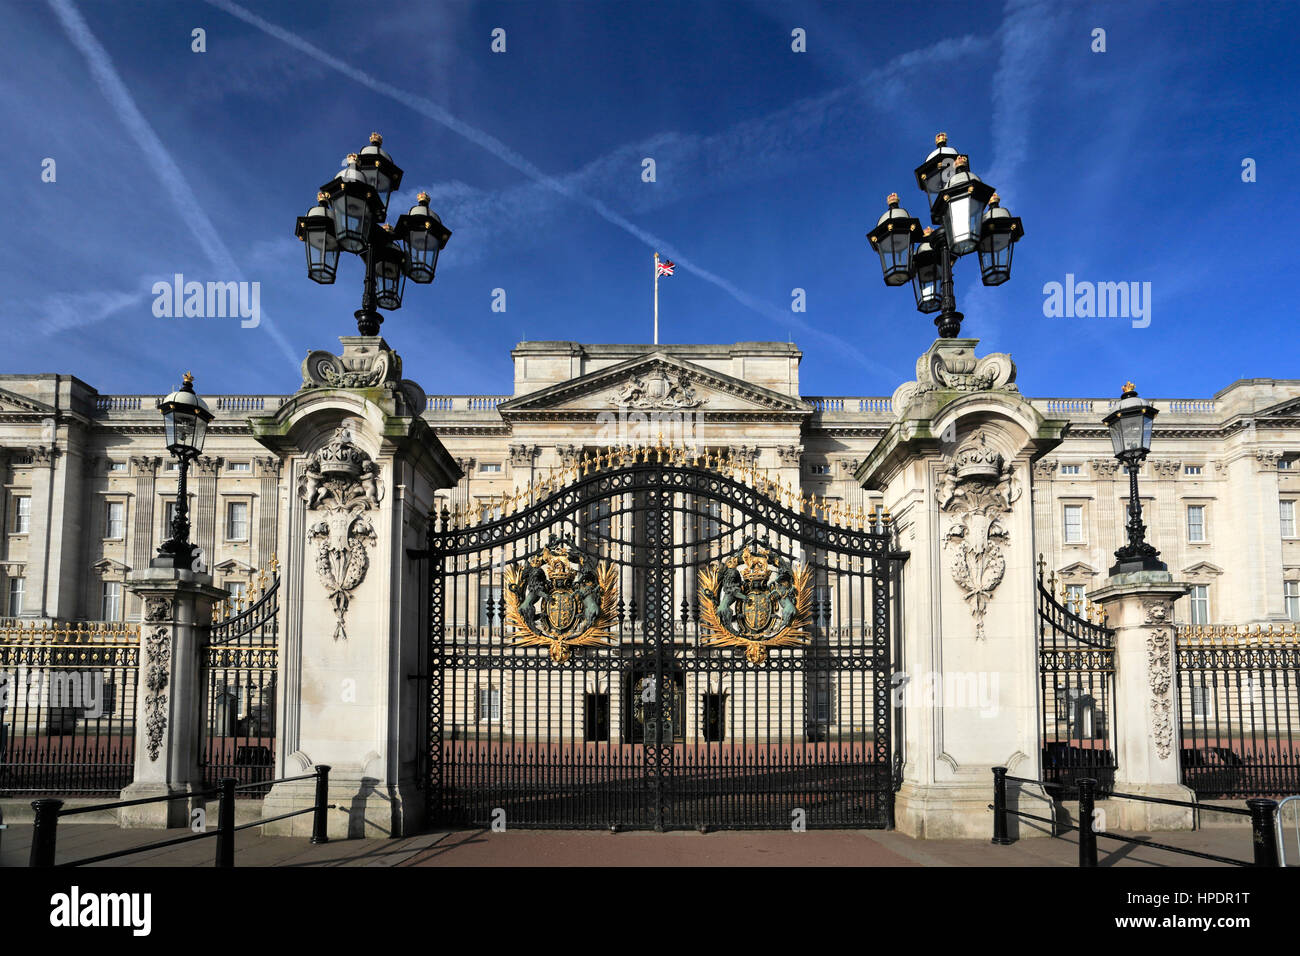 Summer view of the frontage of Buckingham Palace, St James, London, England, UK - Stock Image